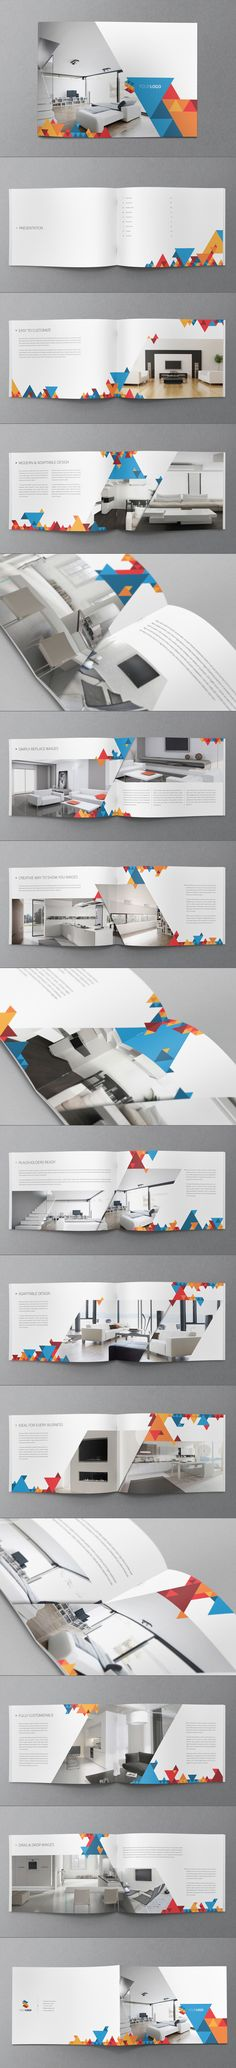 Modern Geometric Brochure by Abra Design, via Behance #design #template